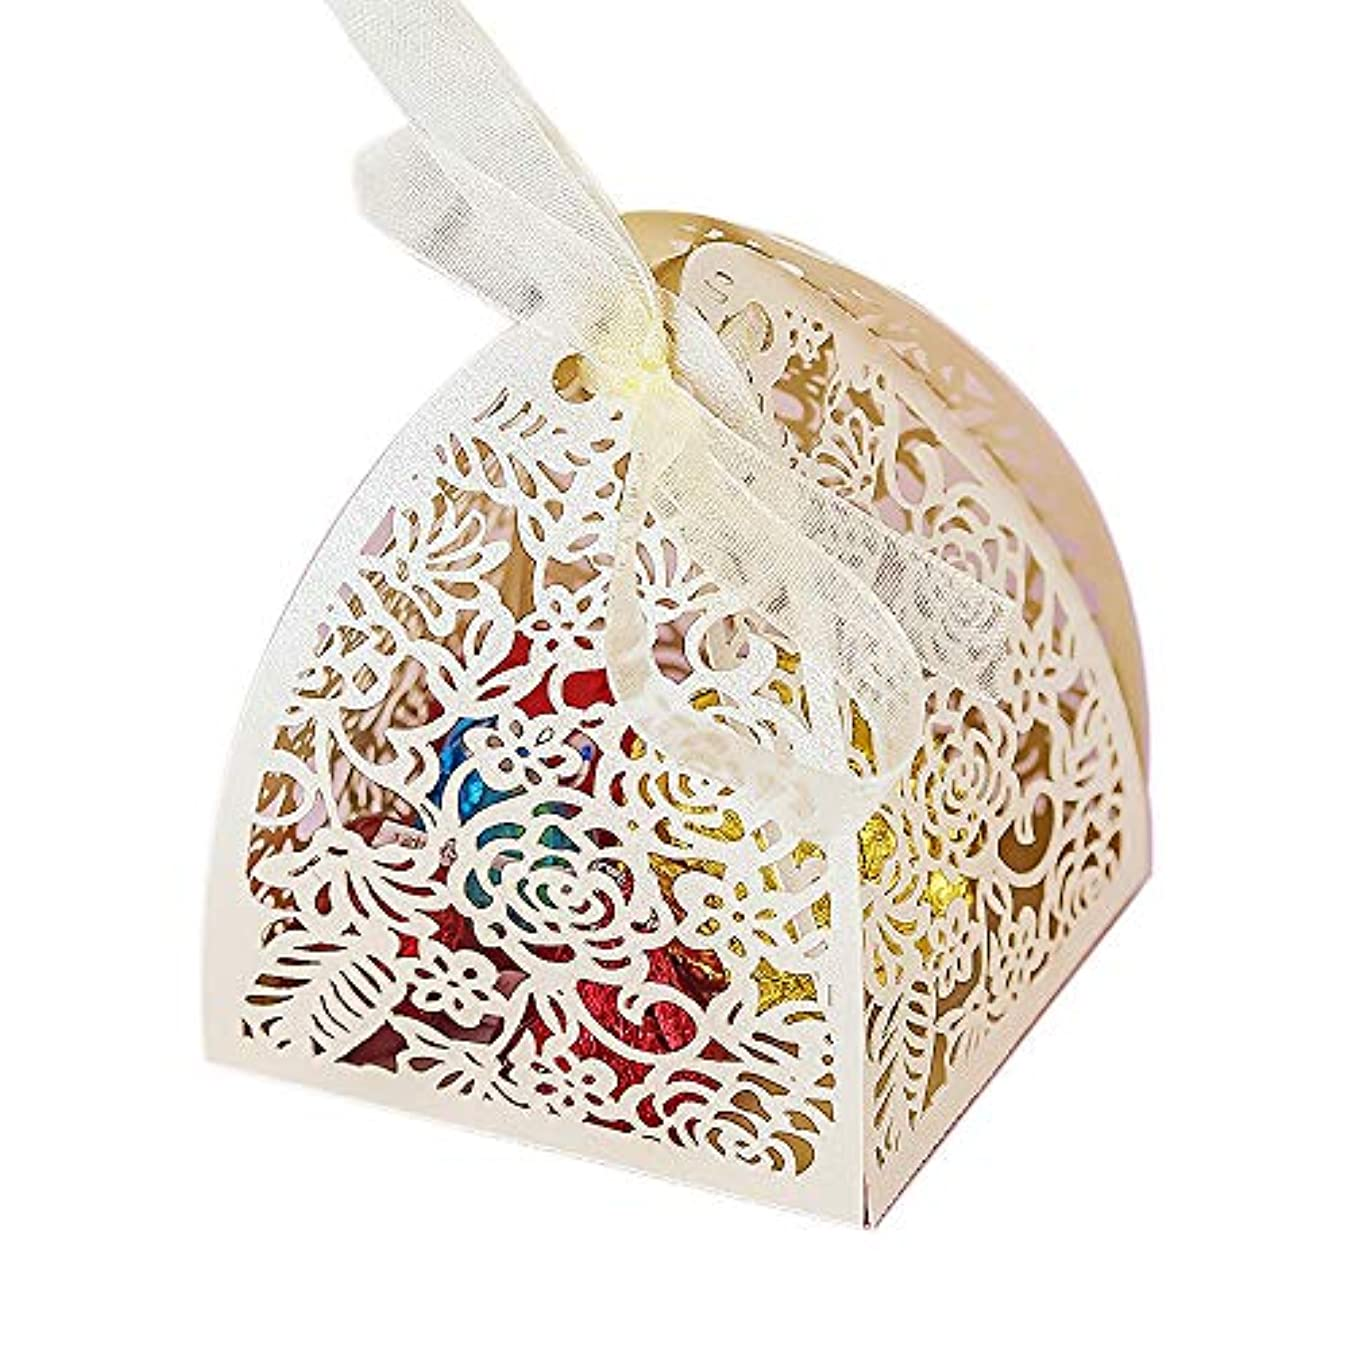 YOZATIA 50pcs Laser Cut Rose Gift Boxes with 50 Ribbons, 2.6''x2.6''x2.8'' Favor Boxes for 16 Birthday Party Wedding Favor (Ivory) n4644024707